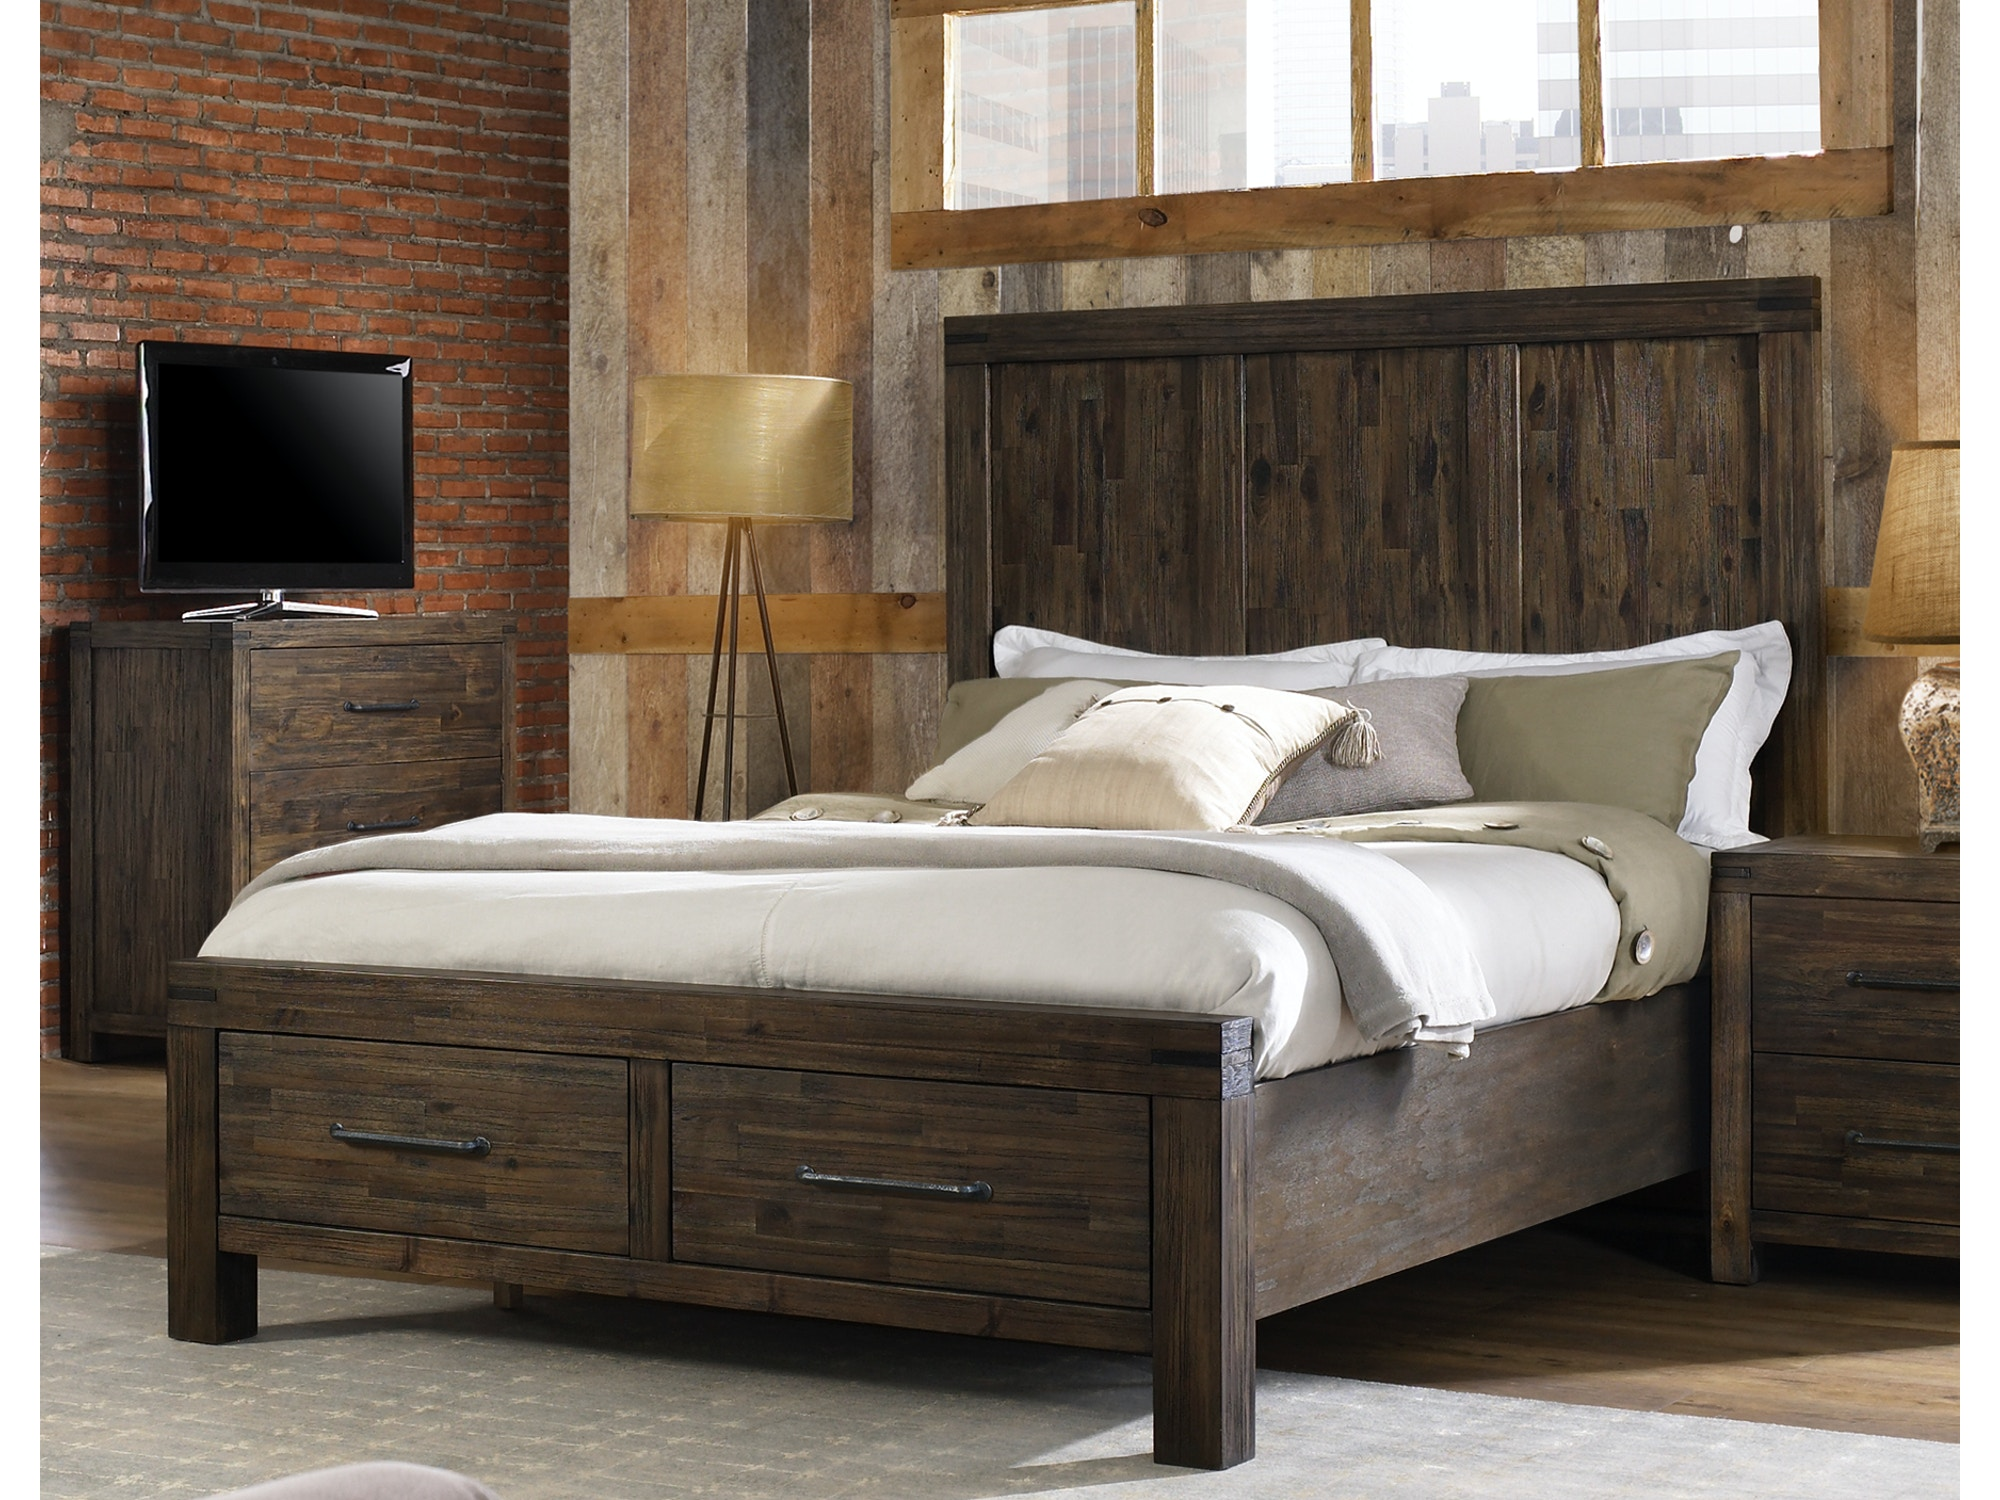 St. Croix Storage Bed - King 654012